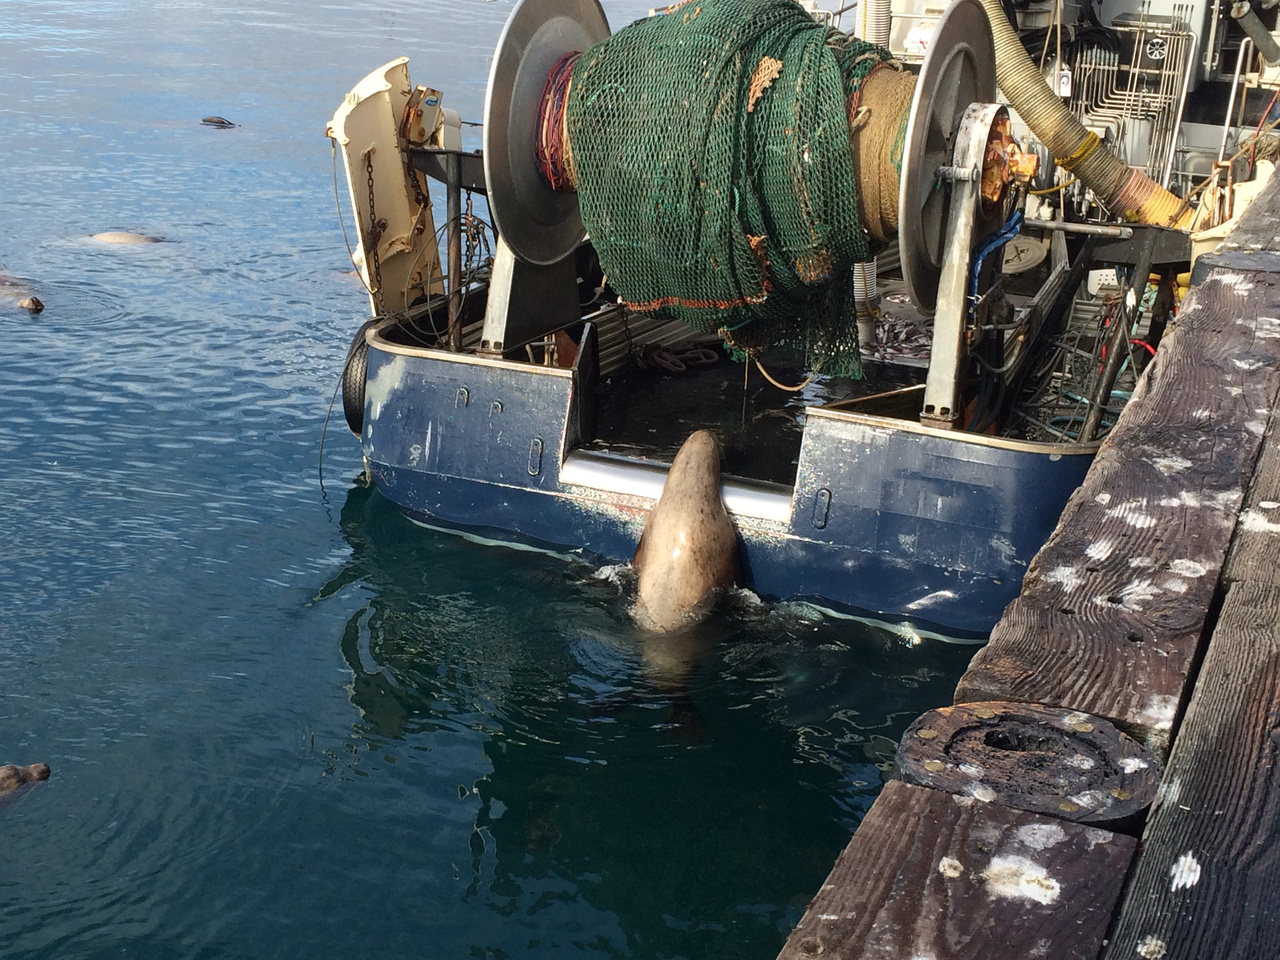 Steller sea lion tries to get onto the stern of a trawler. Photo credit: Noah Meisenheimer